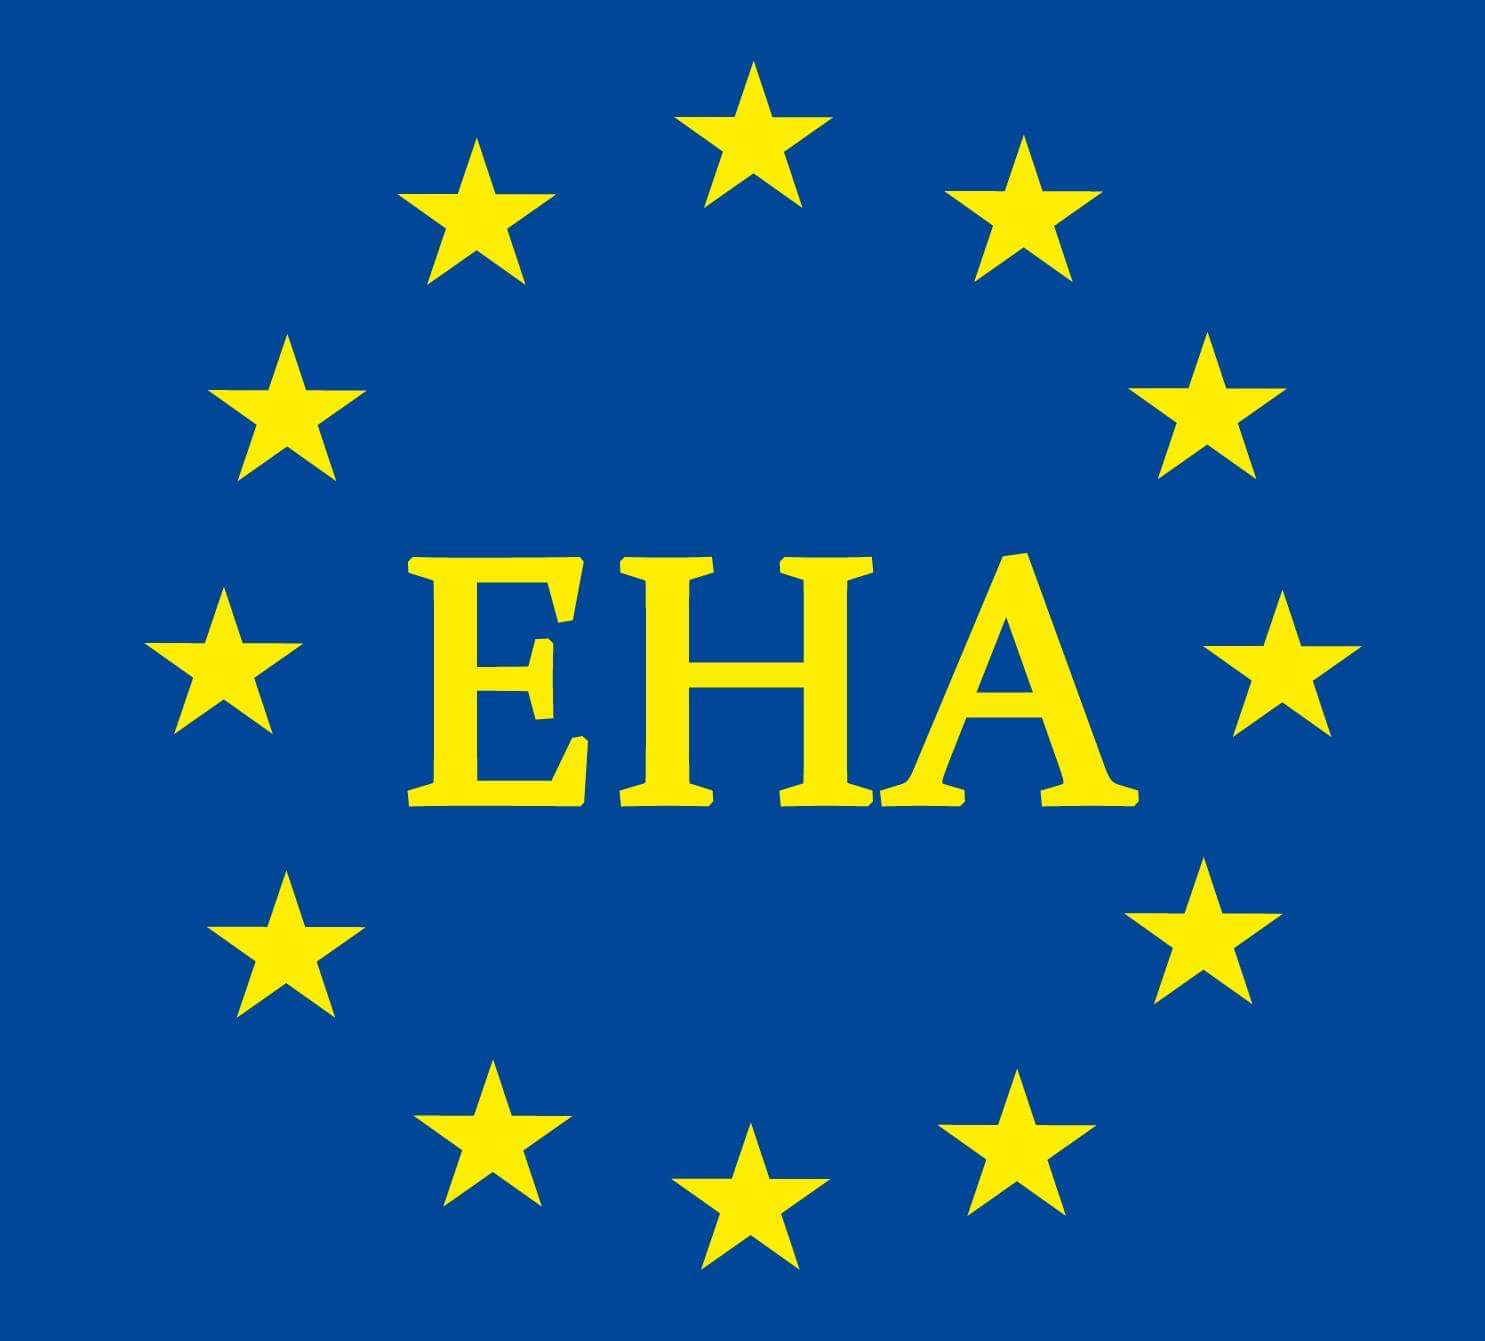 EHA: ORGANIZATION AND ASSOCIATION